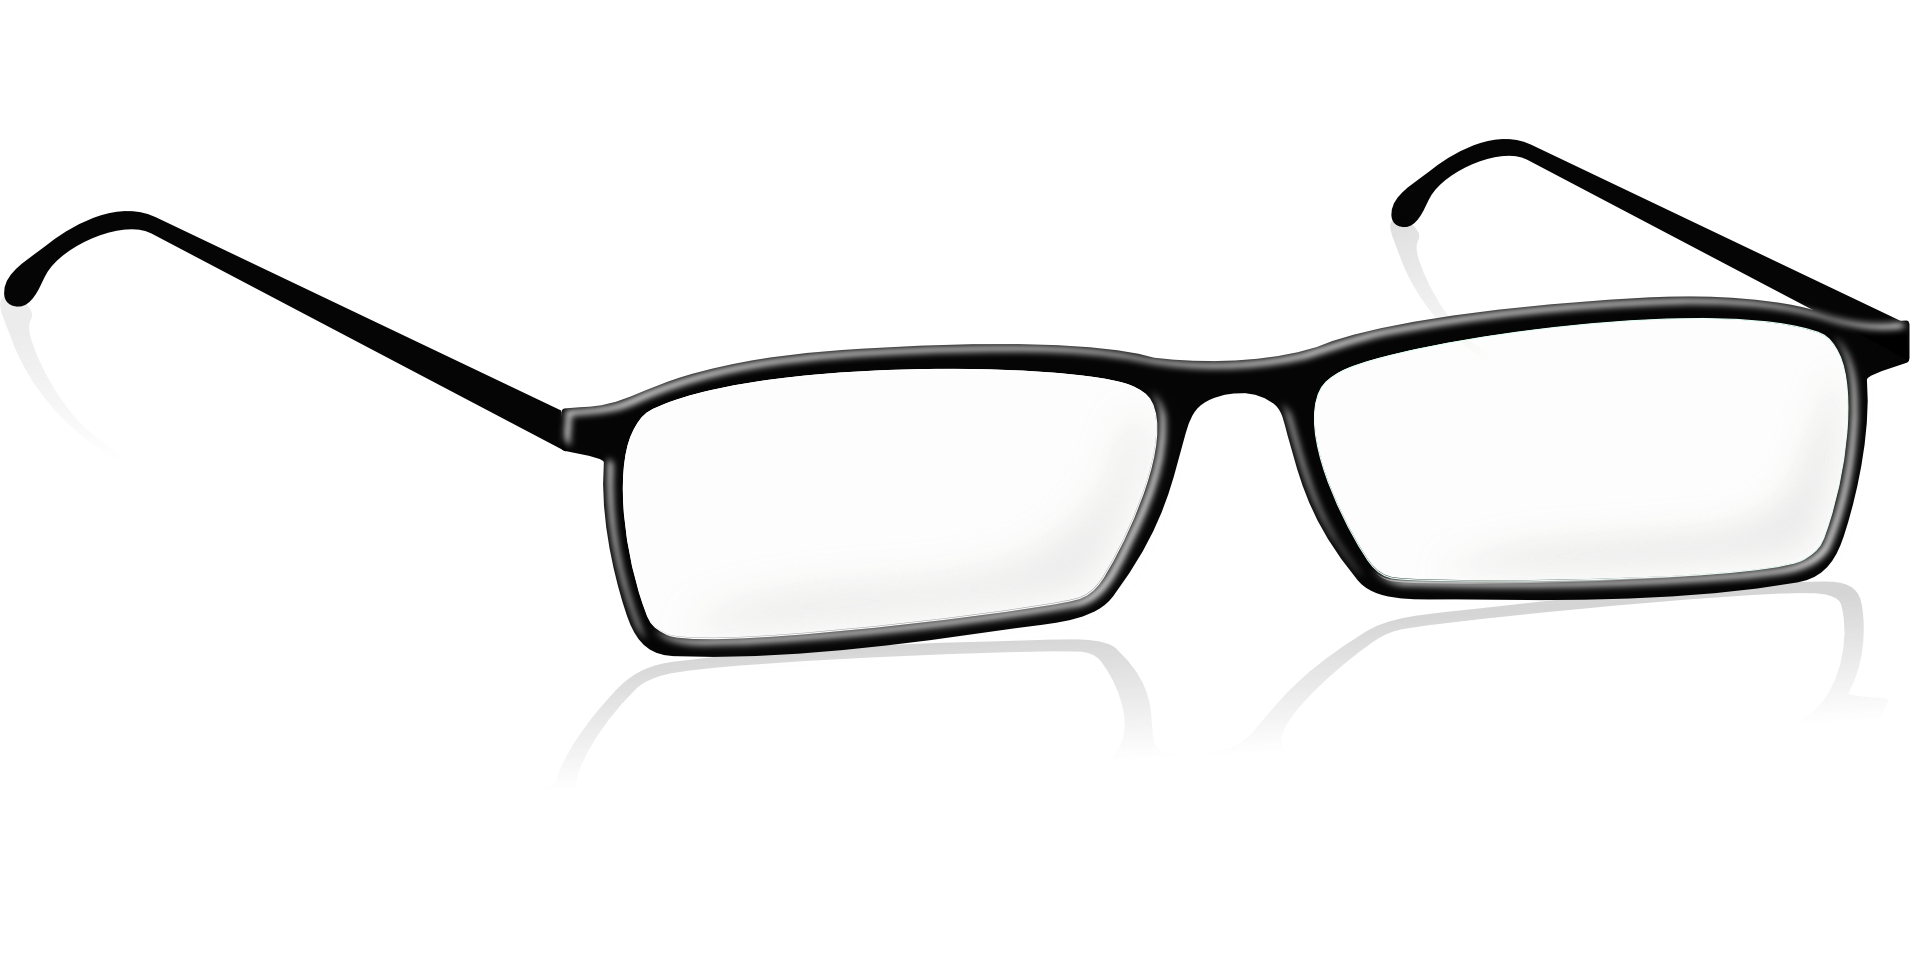 Glasses, spectacle frames vector